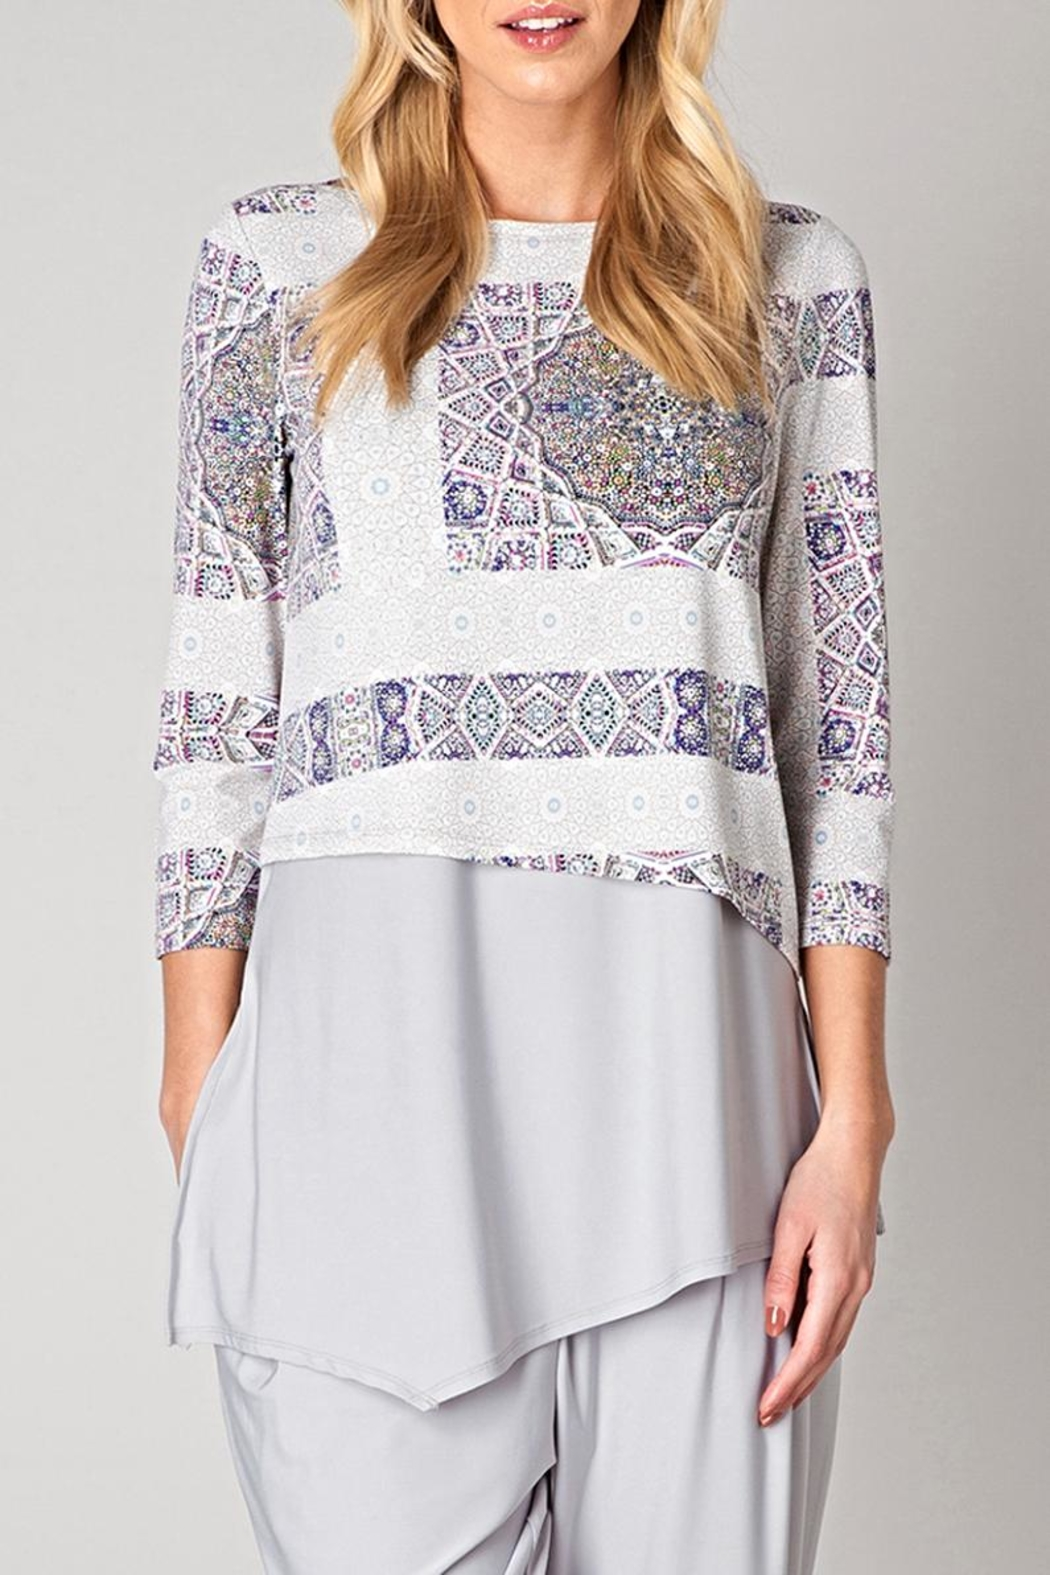 Colletta Pattern Tunic Blouse - Main Image